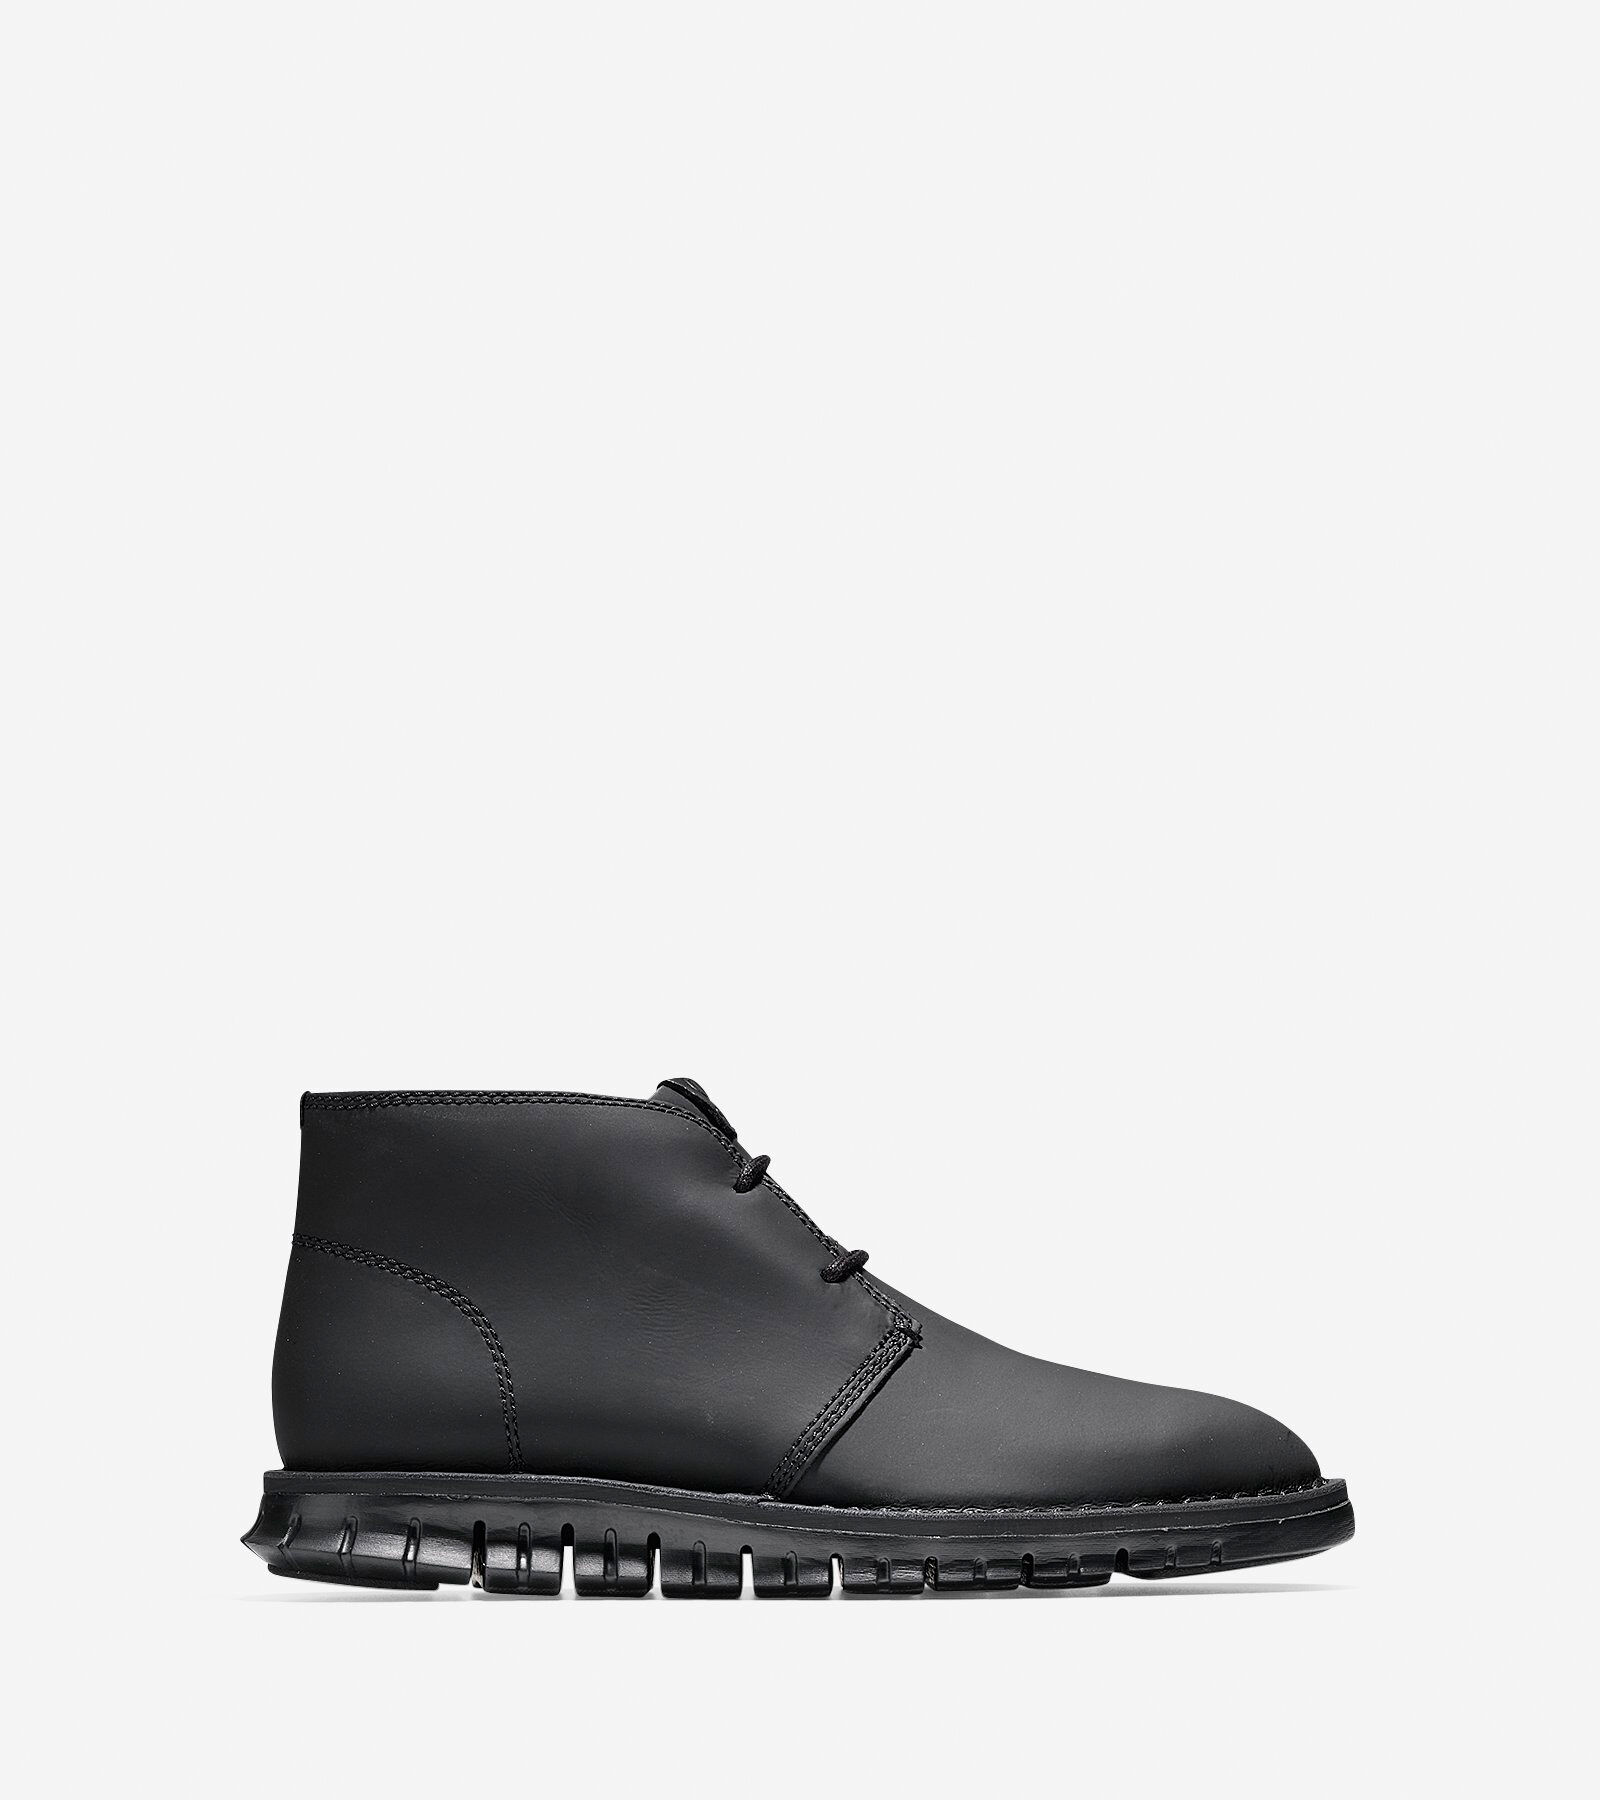 cole haan shoes riyadh airport departure 698429